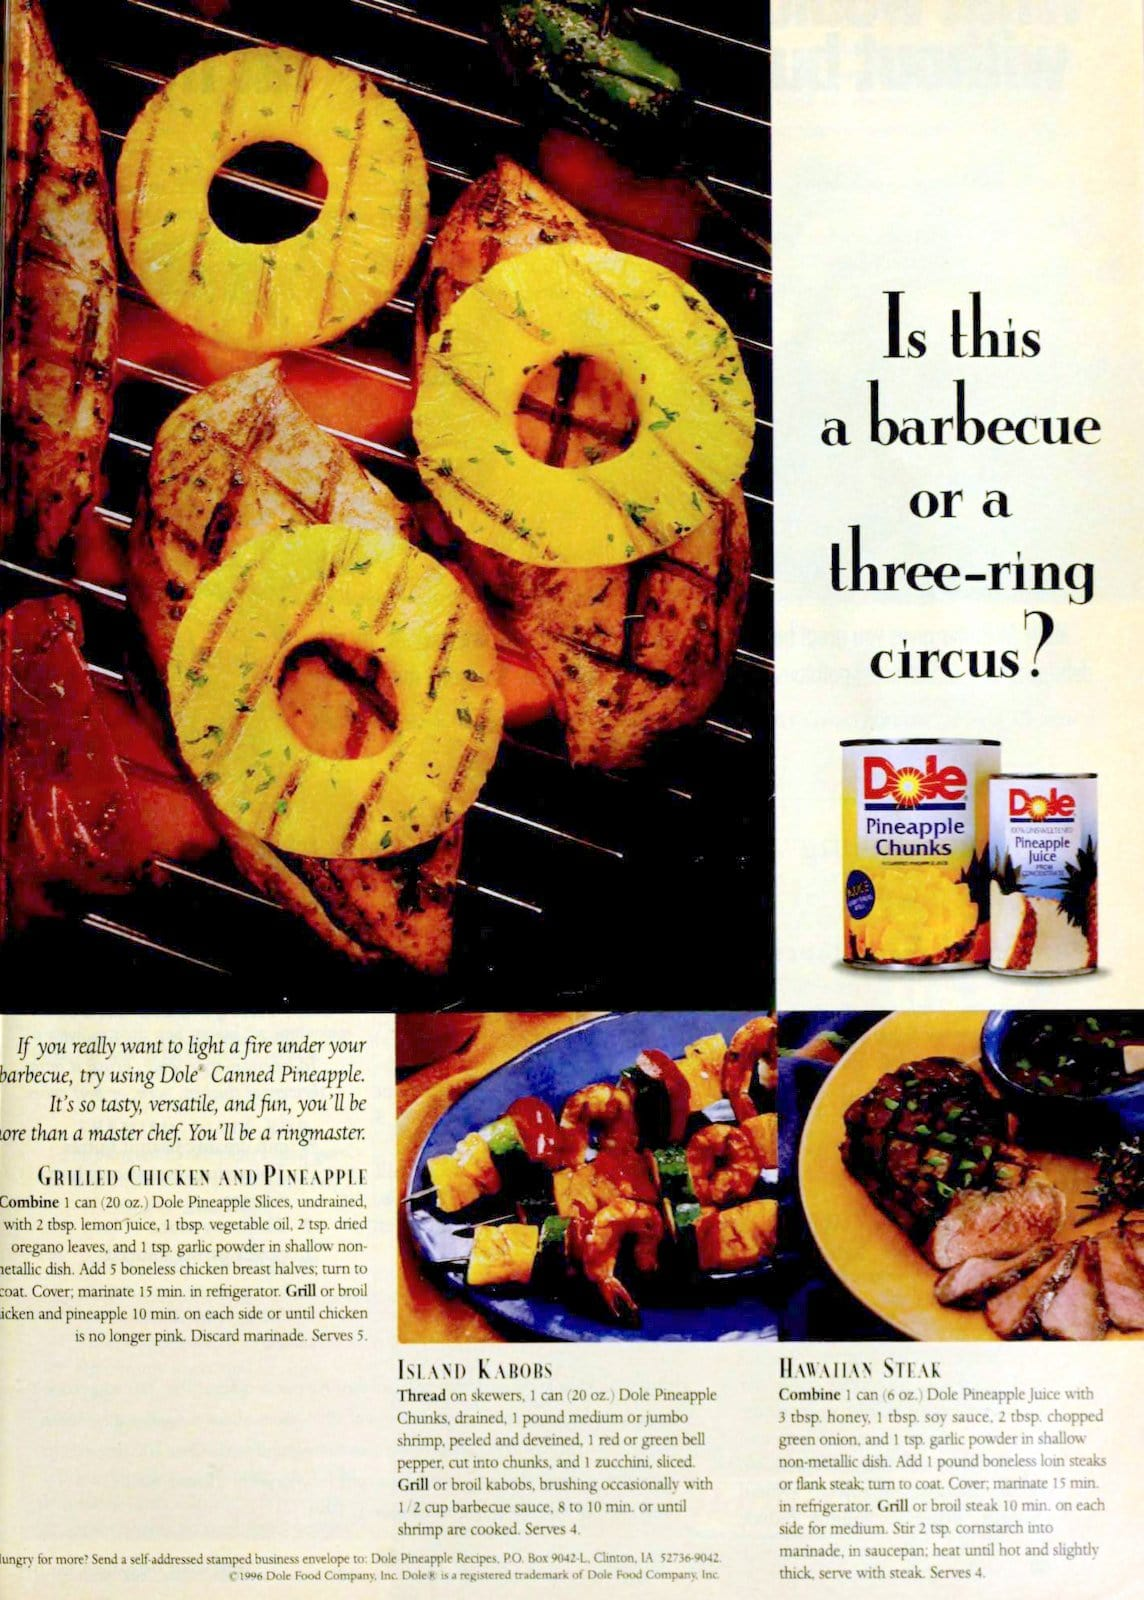 Grilled pineapple recipes (1996)